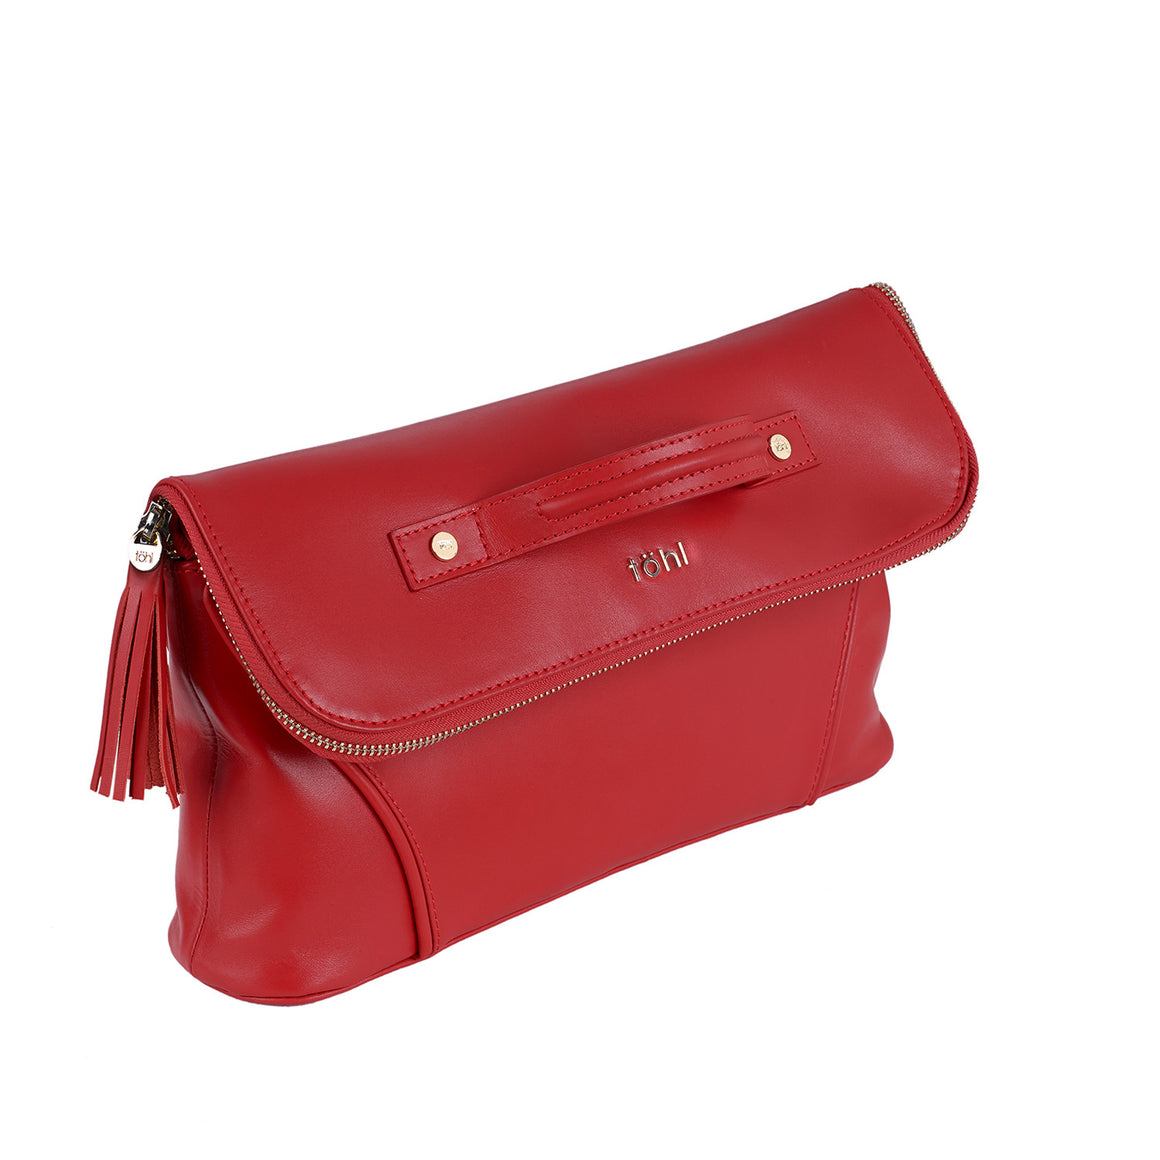 CH 0001 - TOHL TARA WOMEN'S TASSELED CLUTCH - SPICE RED